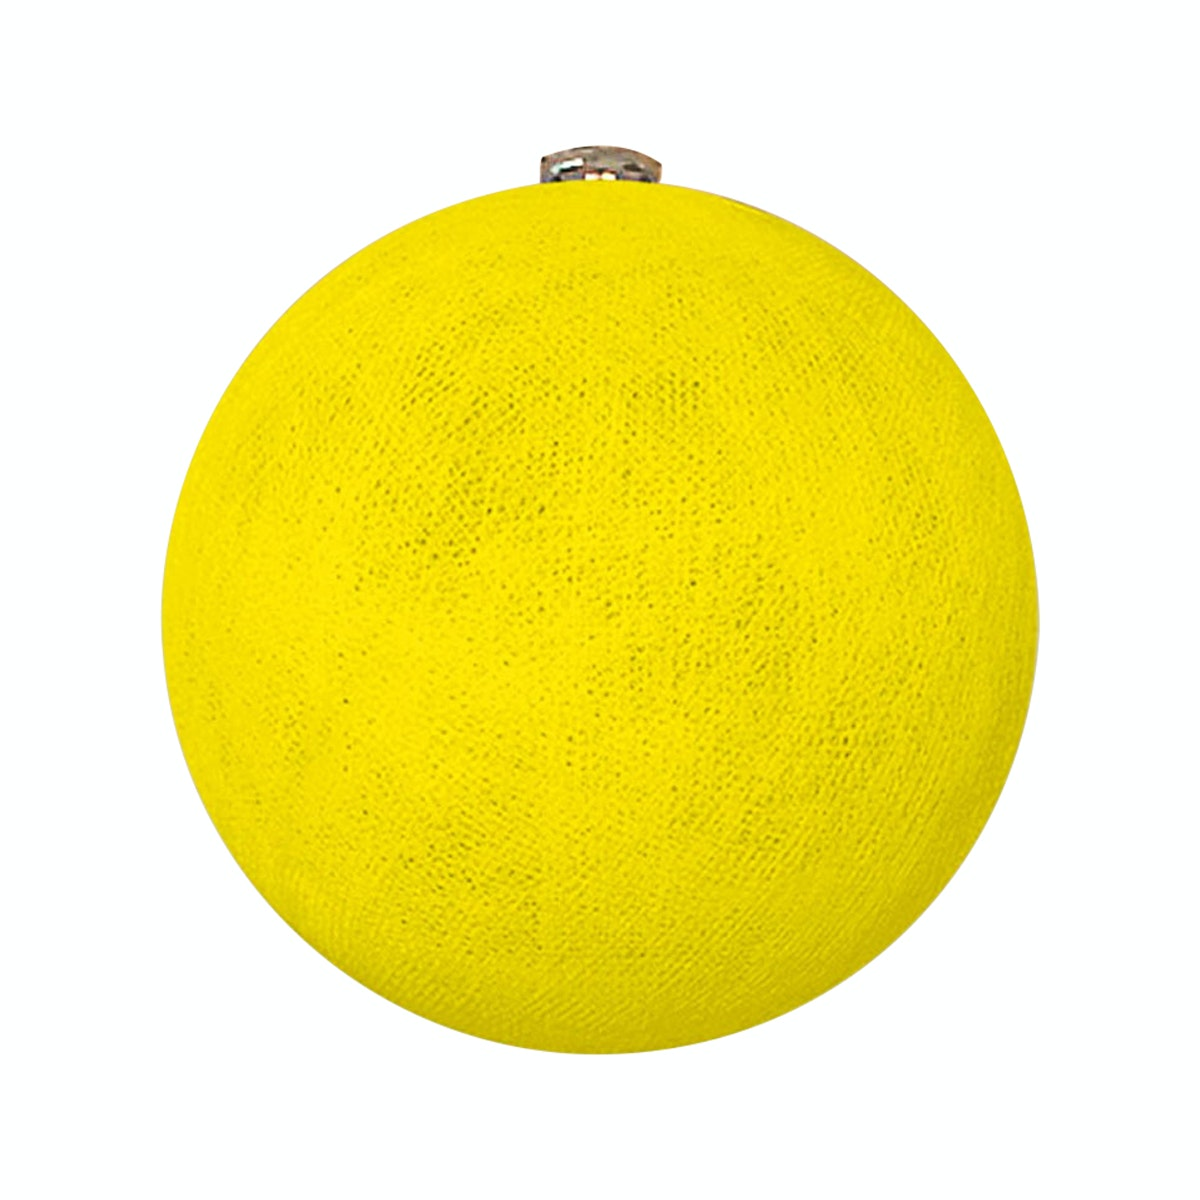 "Lightcraft Indonesia Big Cotton Ball 10"" Yellow"